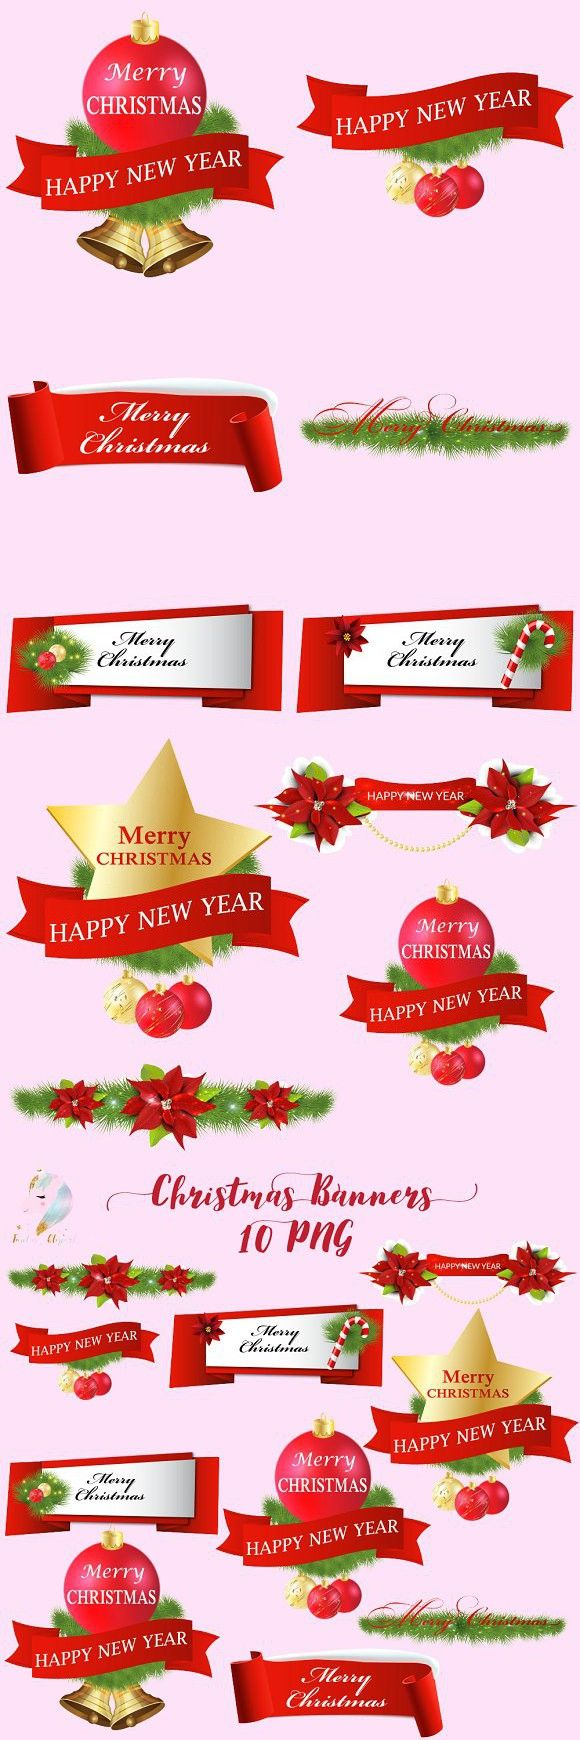 christmas banners clipart [ 580 x 1740 Pixel ]